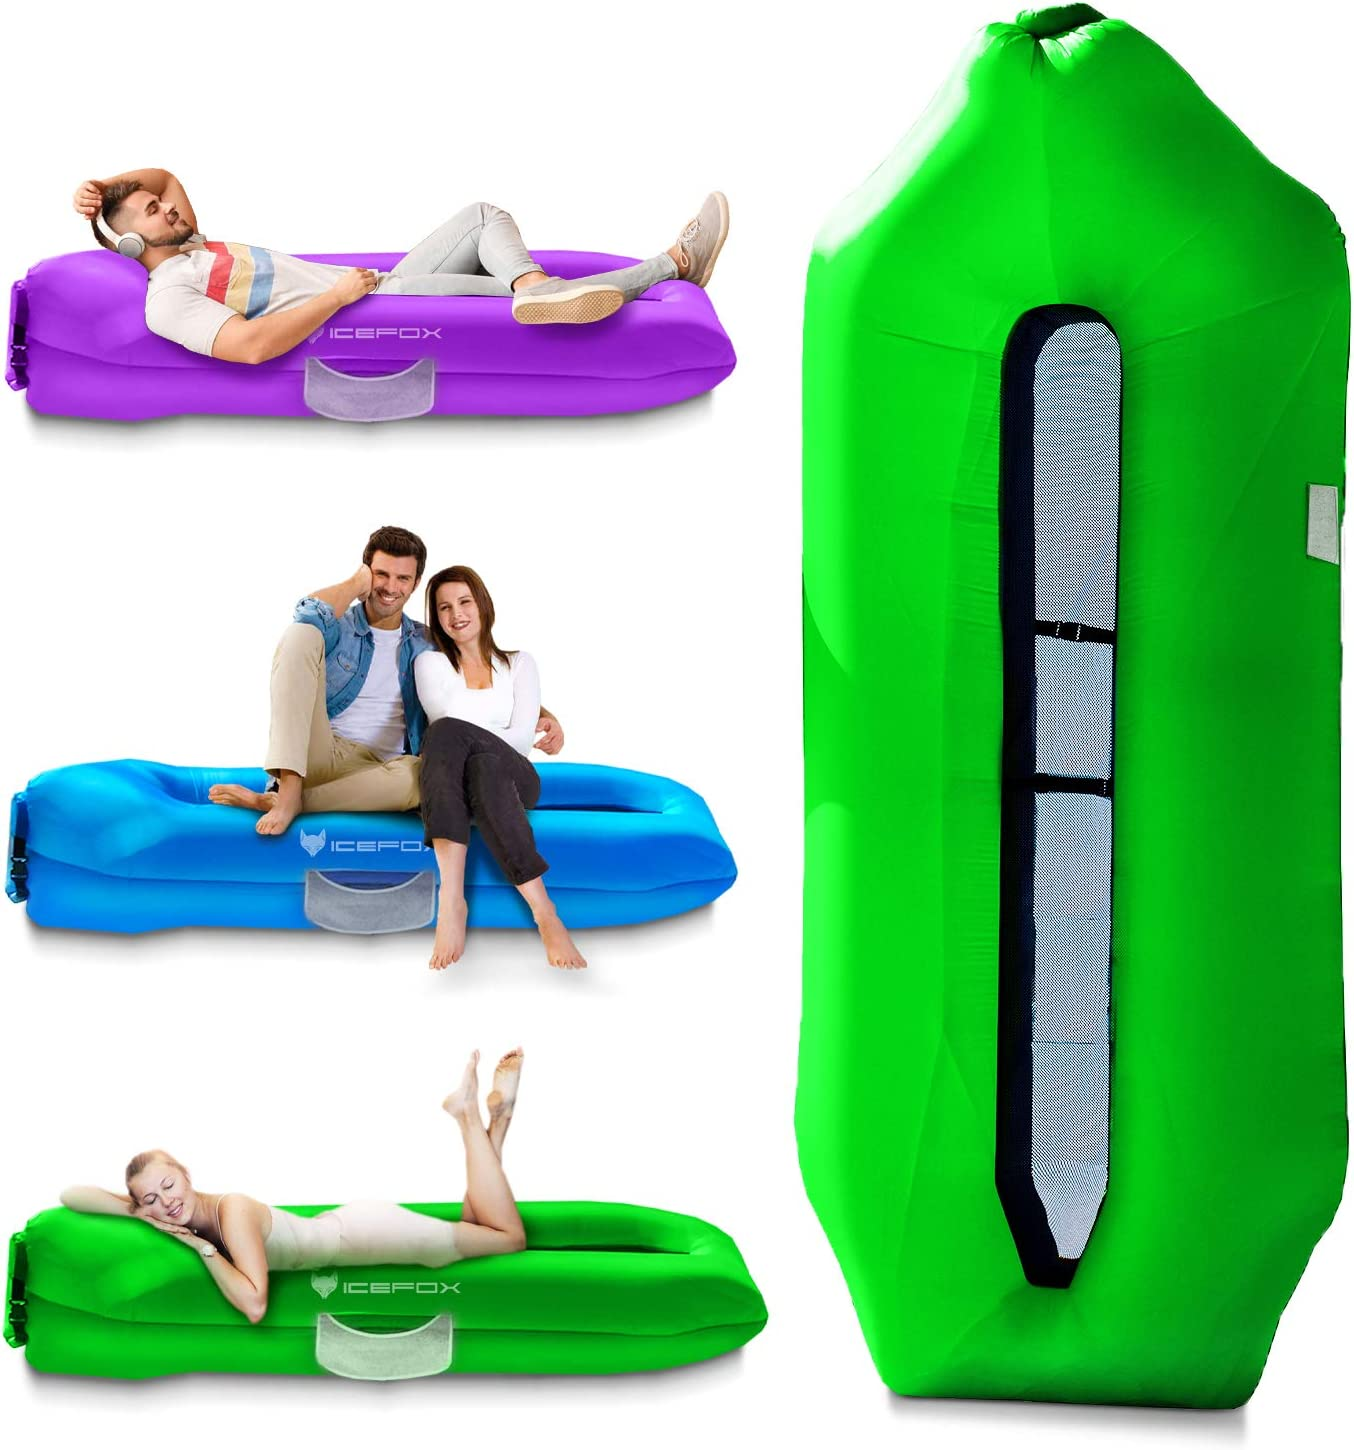 IceFox Inflatable Lounger